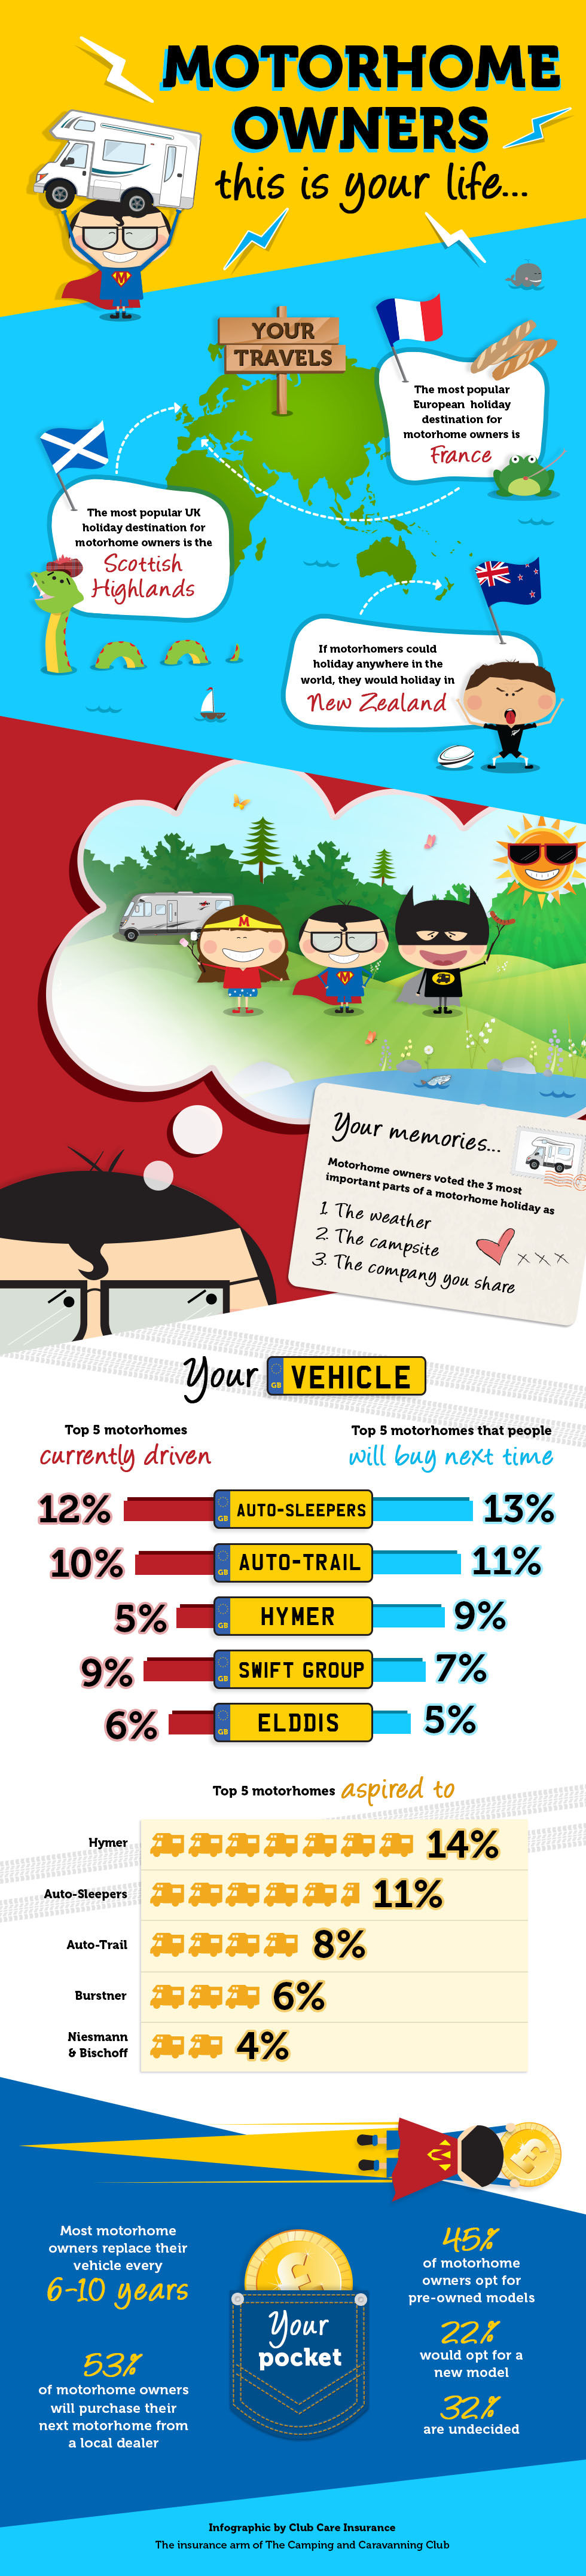 motorhomers this is your life infographic